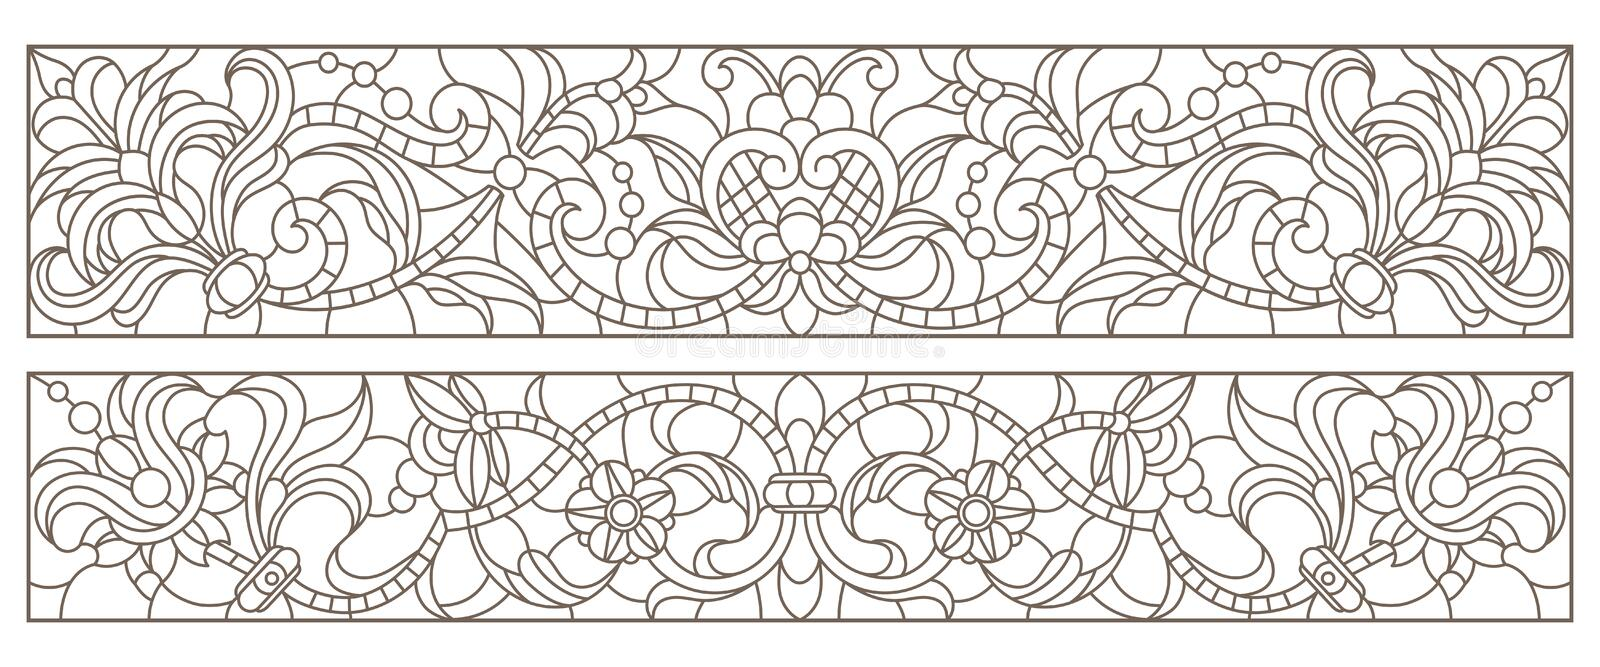 Contour set with   illustrations of stained glass with abstract swirls and flowers , horizontal orientation royalty free illustration